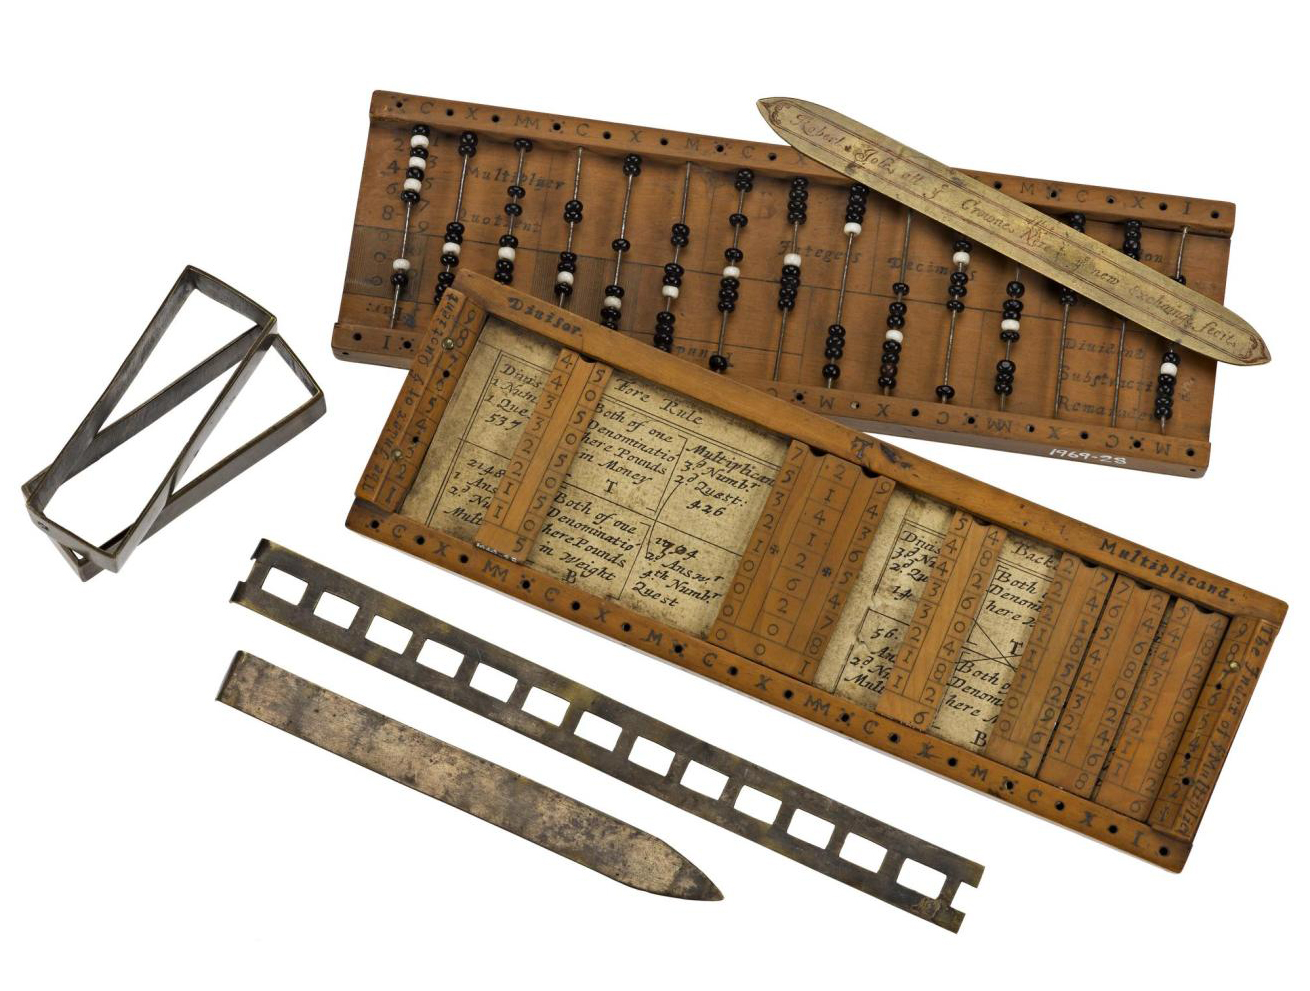 Arithmetical compendium, combining strip form Napier's Bones and bead-type abbacus, in boxwood case, by Robert Jole of London, c. 1670